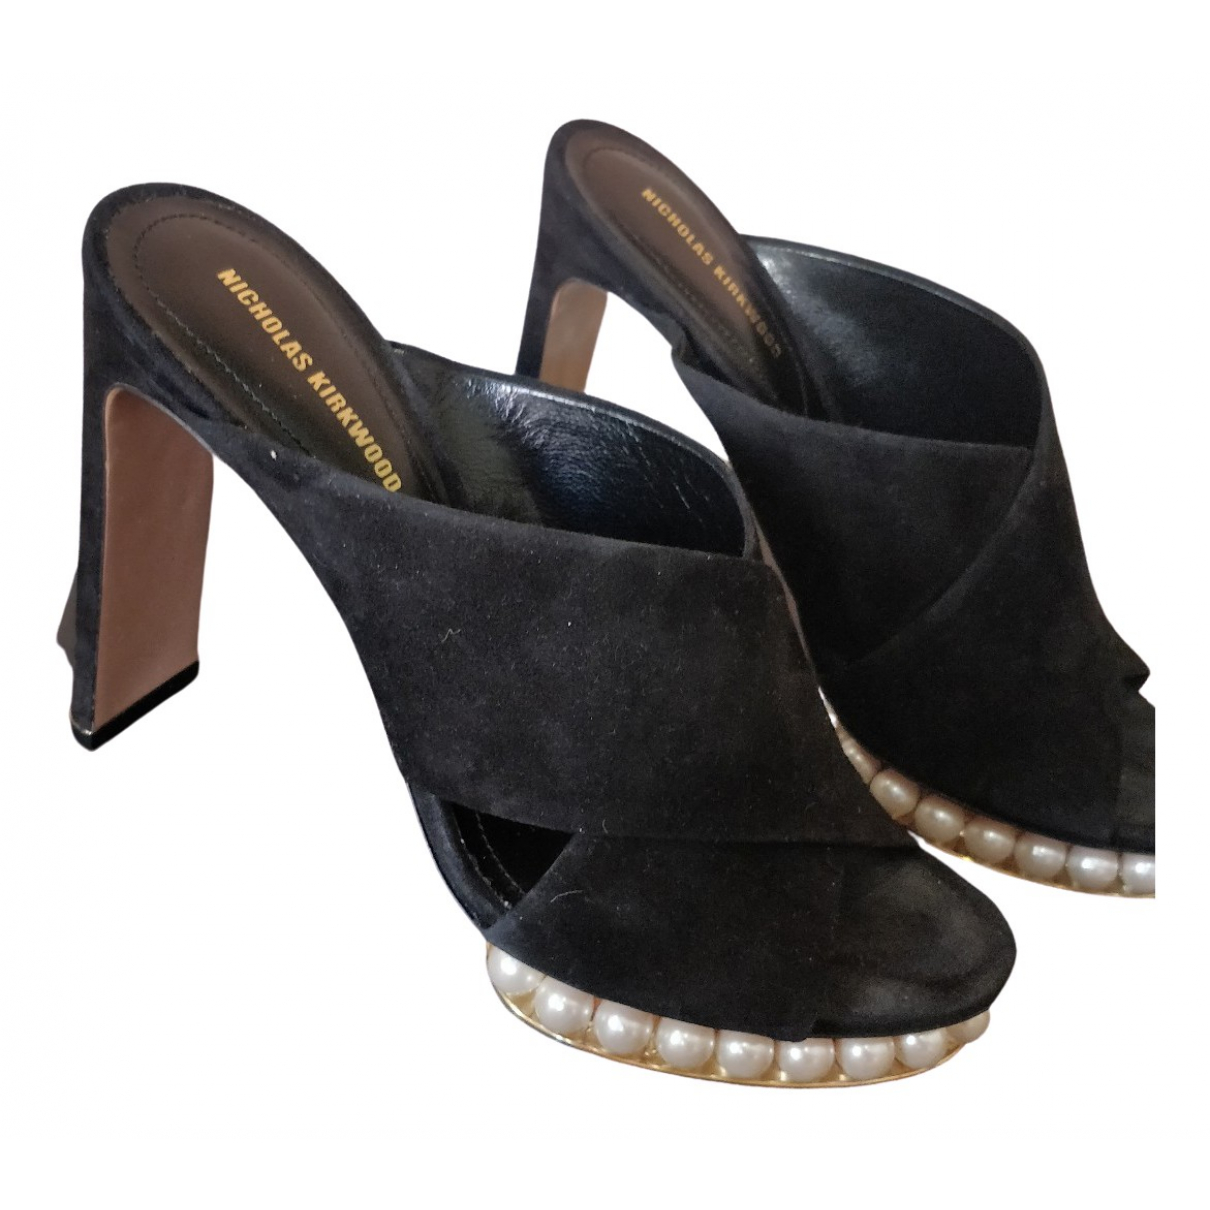 Nicholas Kirkwood \N Black Suede Sandals for Women 38 EU